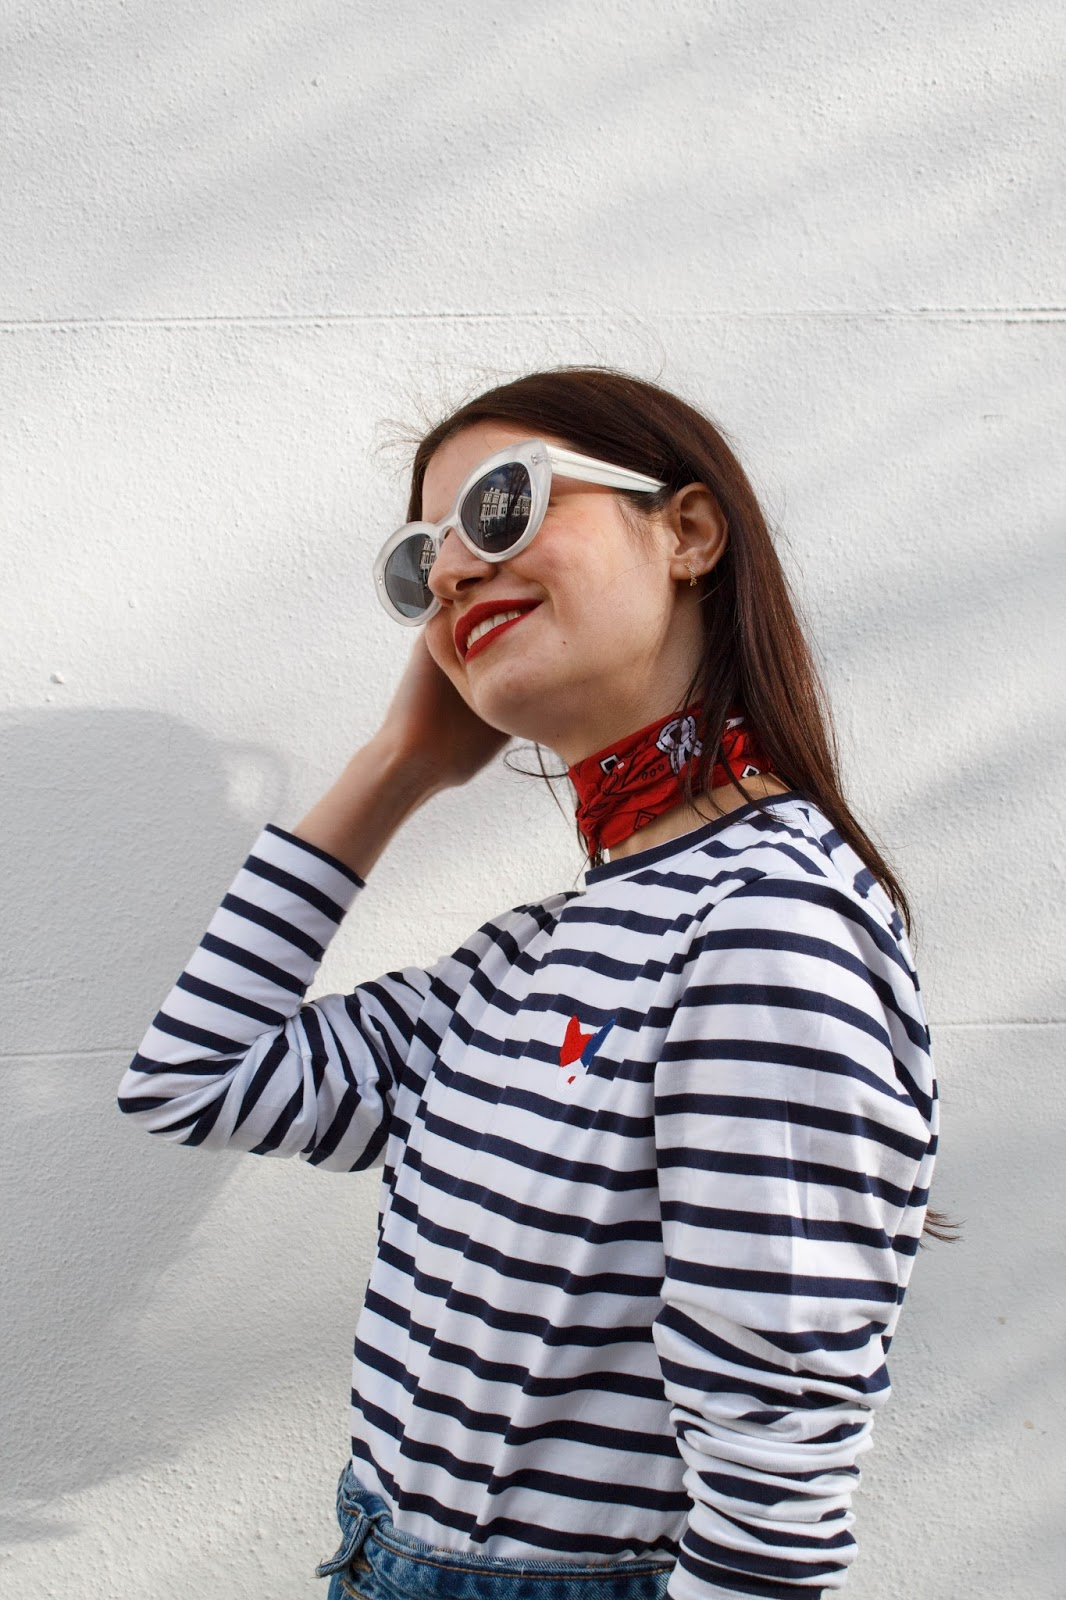 fashion blogger, london blogger, microinfluencer, valentino, valentino shoes, valentino tango pumps, etre cecile, accessorize earrings, Z for accessorize, bandana, denim skirt, red lips, A J Morgan